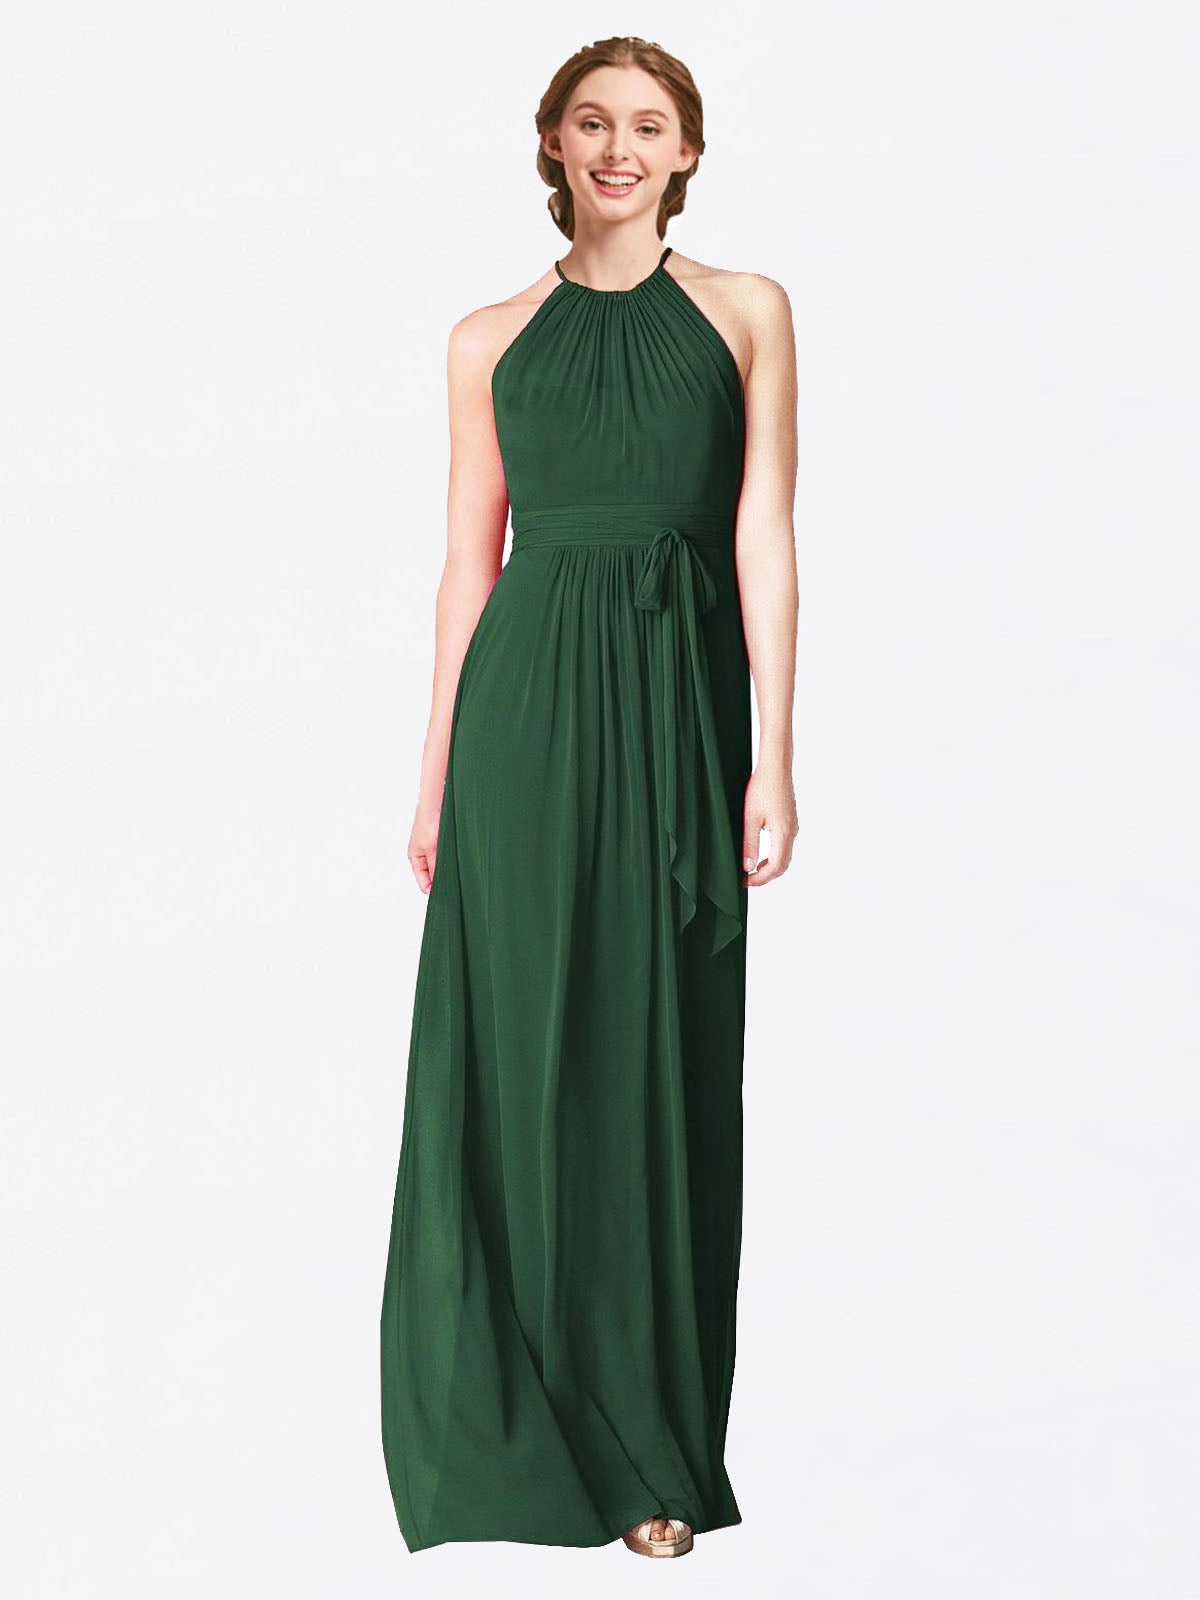 Long A-Line Halter Sleeveless Dark Green Chiffon Bridesmaid Dress Laura